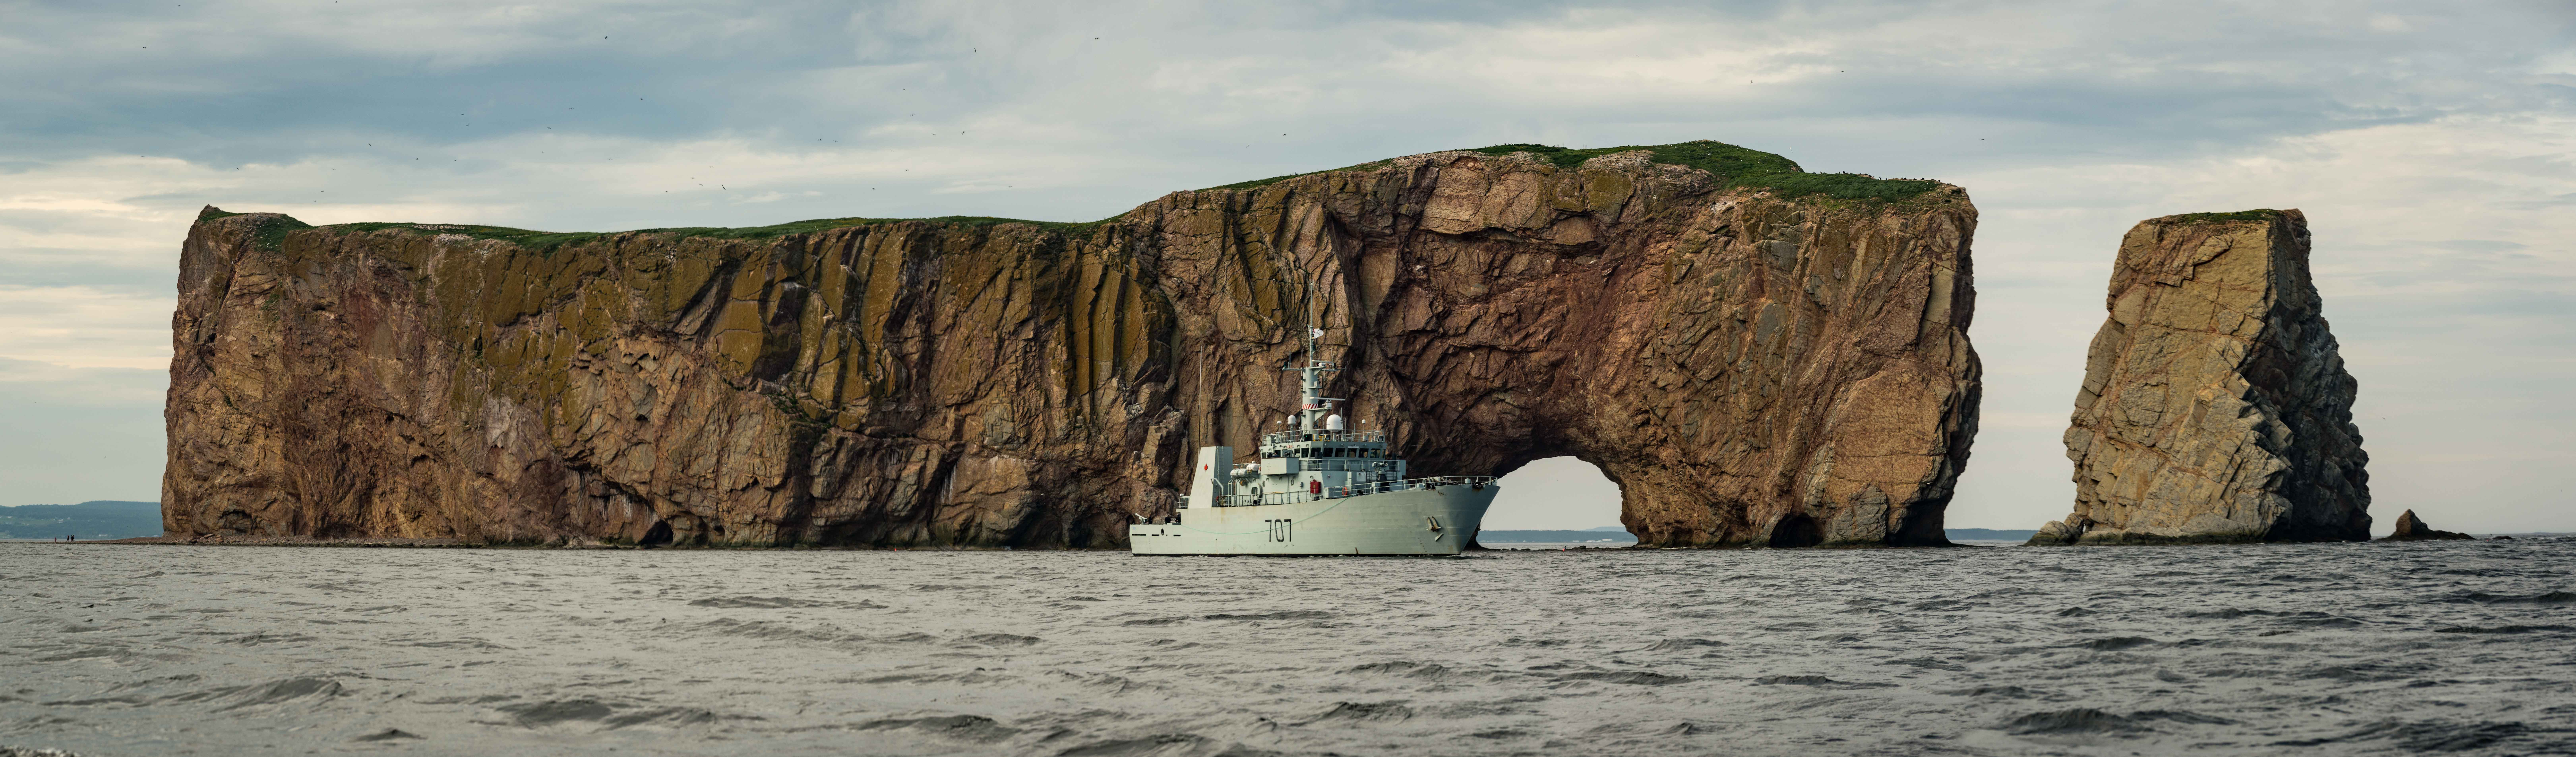 Canadian Navy - Marine Canadienne - Page 7 35467844555_c5bca676a4_o